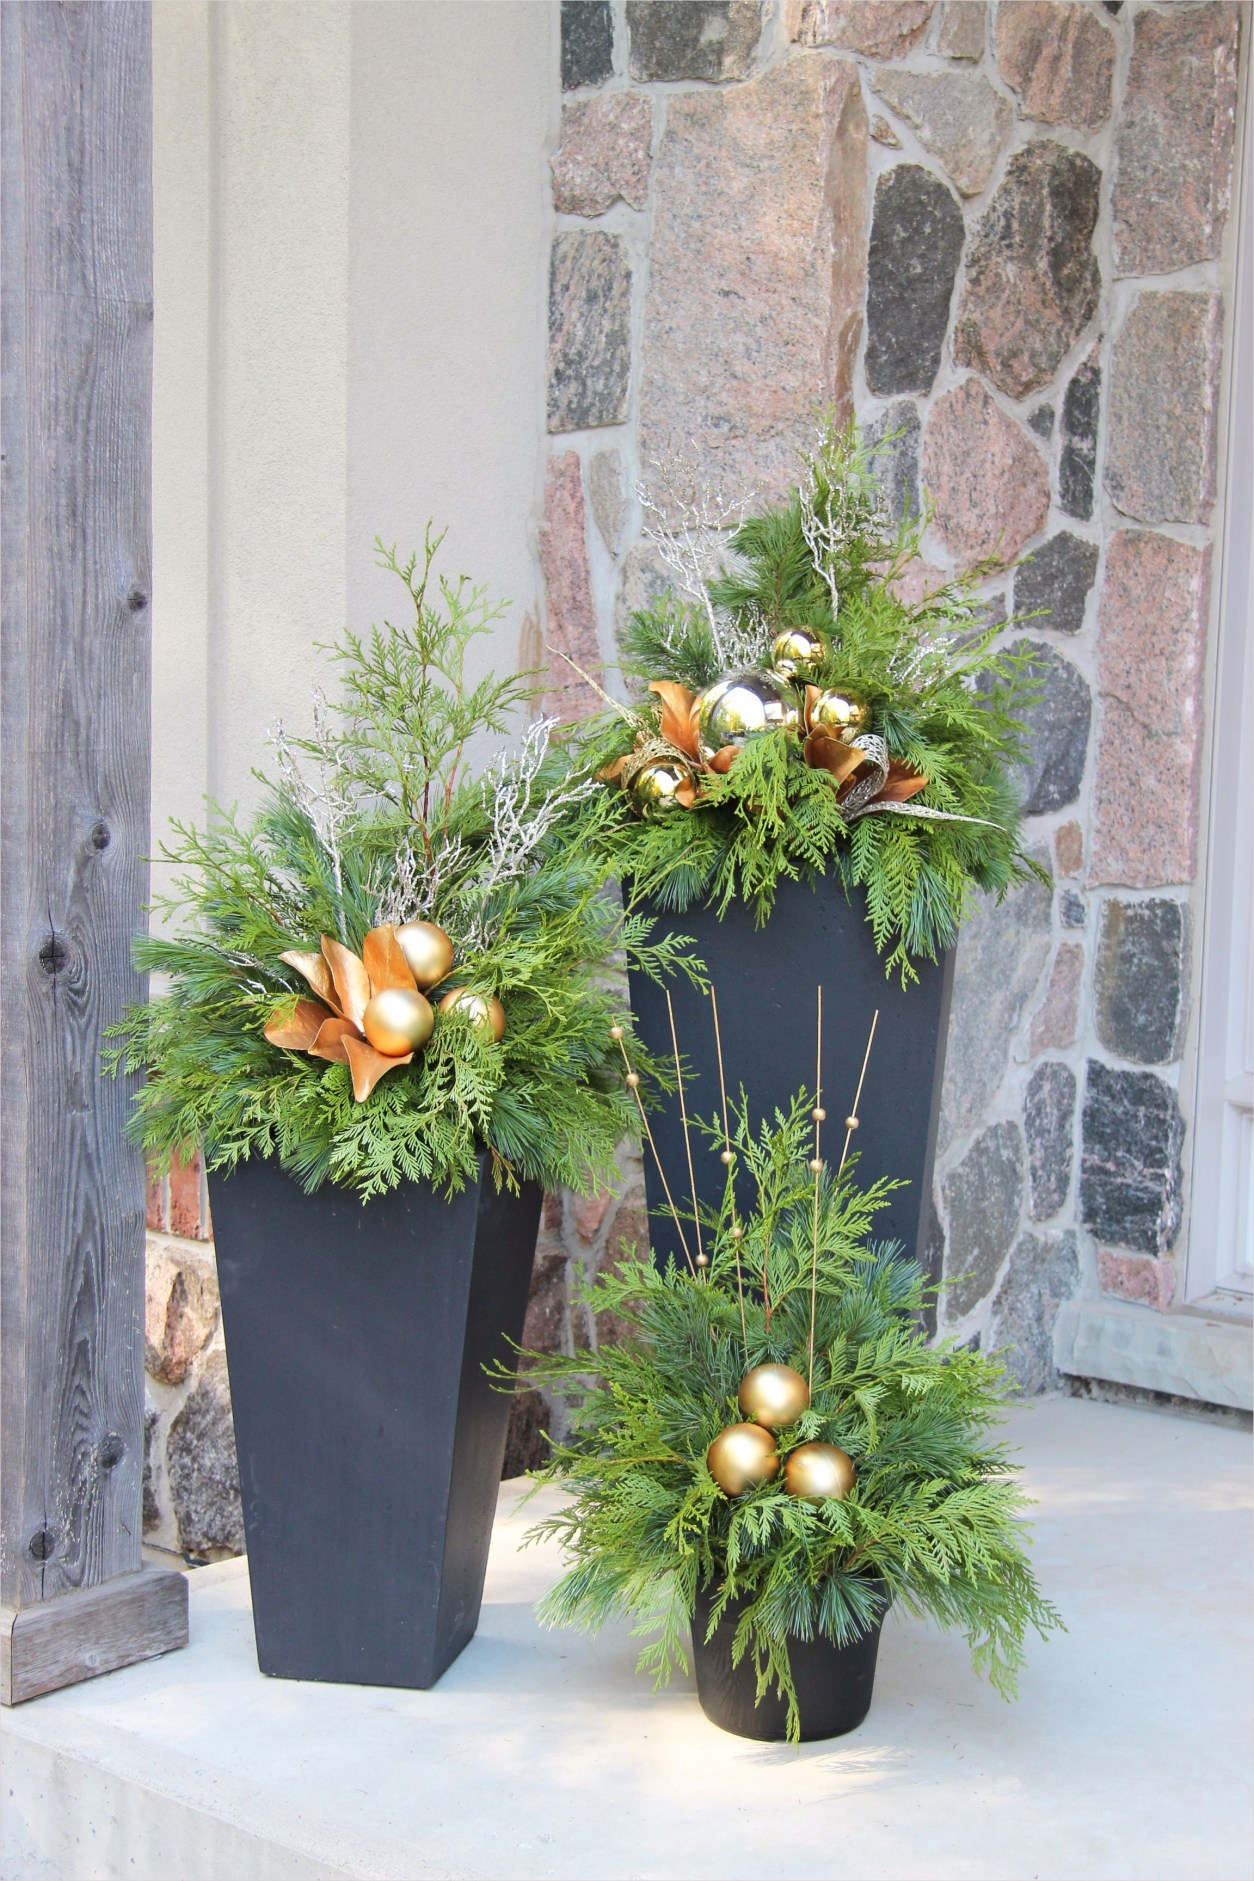 42 Beautiful Christmas Outdoor Pot Decorations Ideas 71 Outdoor Christmas Planter All About Christmas Decorations Pinterest 2